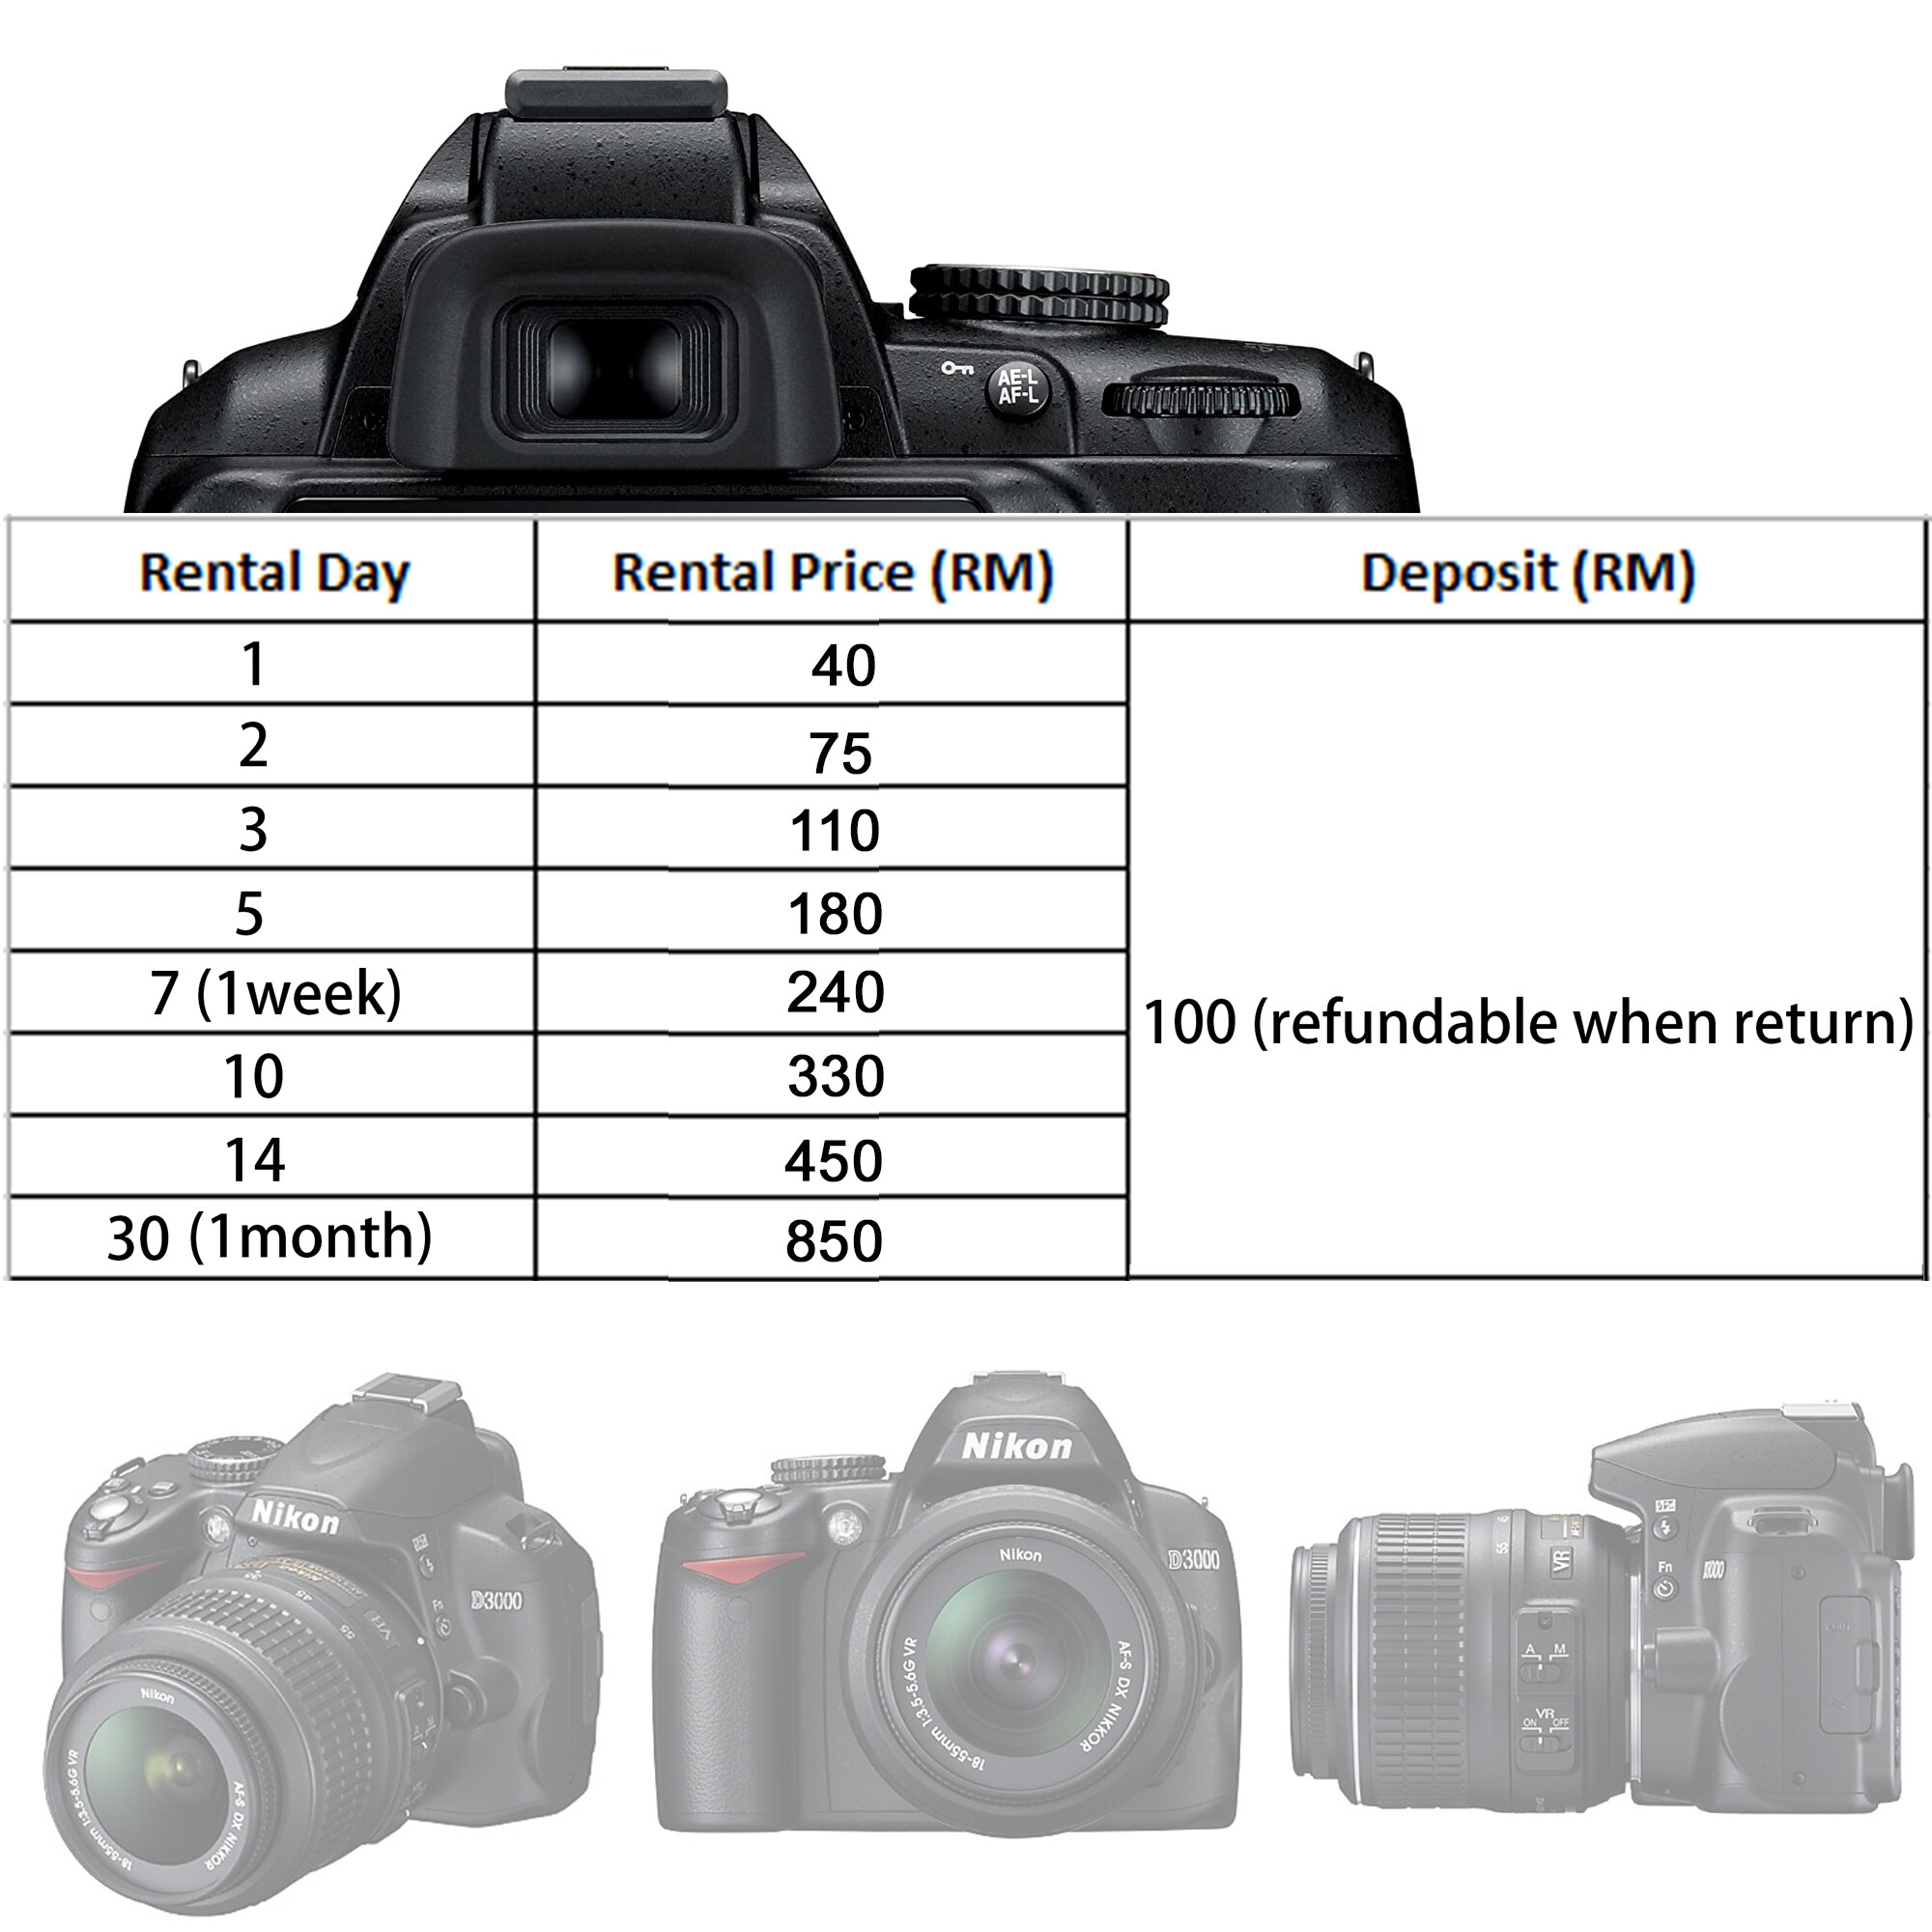 For Rent / Sewa - Nikon D3000 DSLR Camera for Rent (sewa) Camera Body + Lens + 4GB SD Card + Battery + Battery Charger + Nikon Bag (Not for Sale)